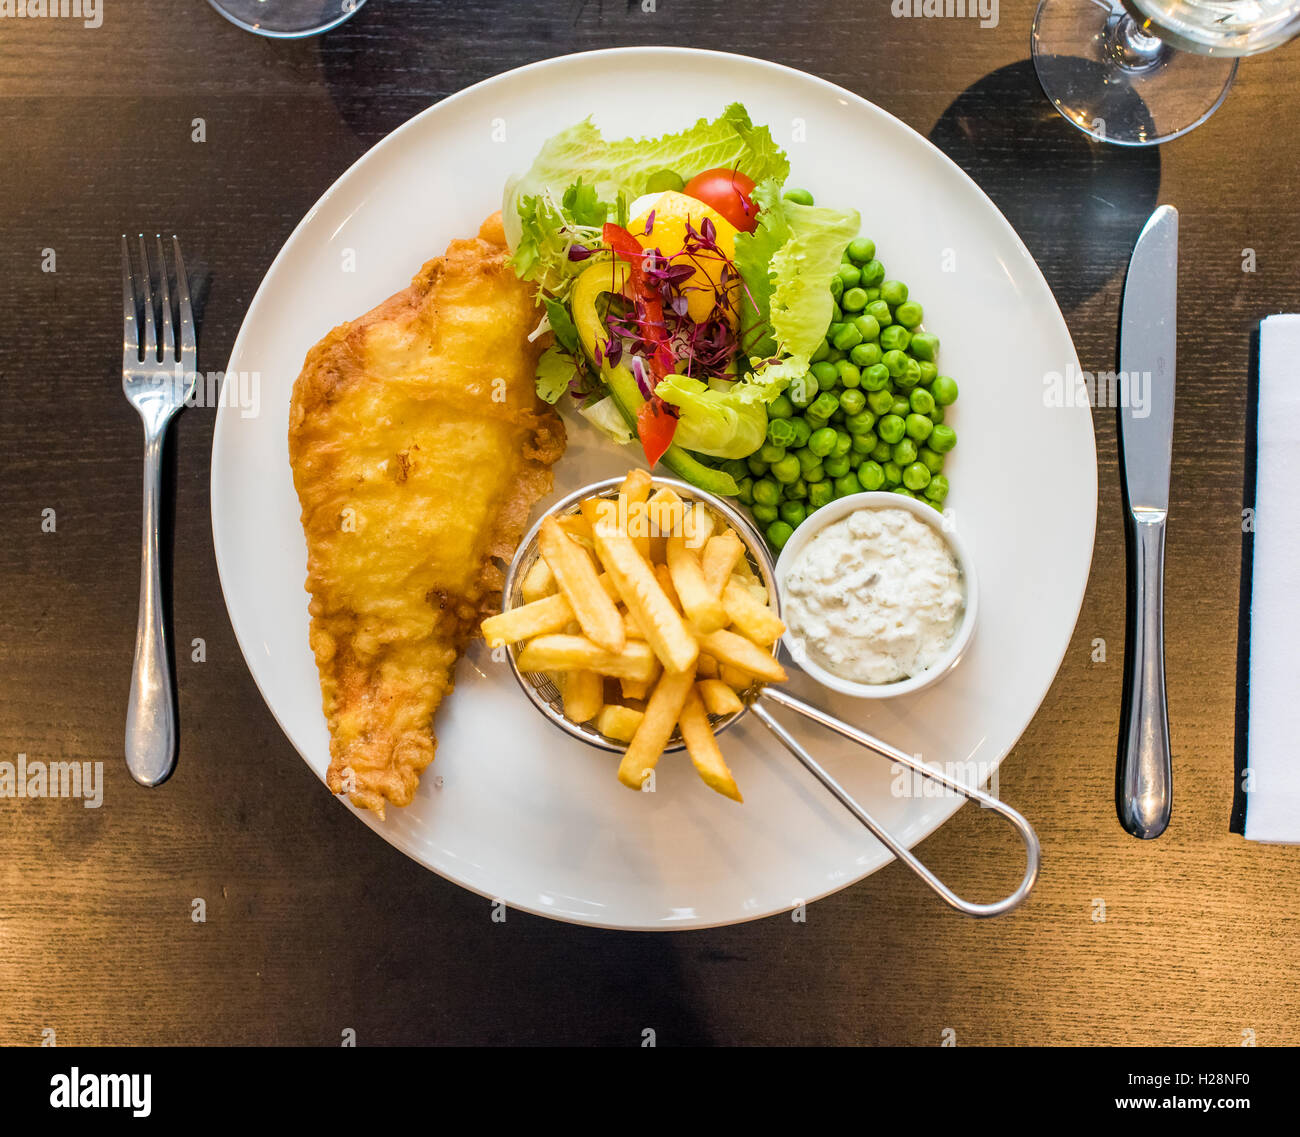 Fish and chips with peas served on a plate with salad and tartar sauce - Stock Image